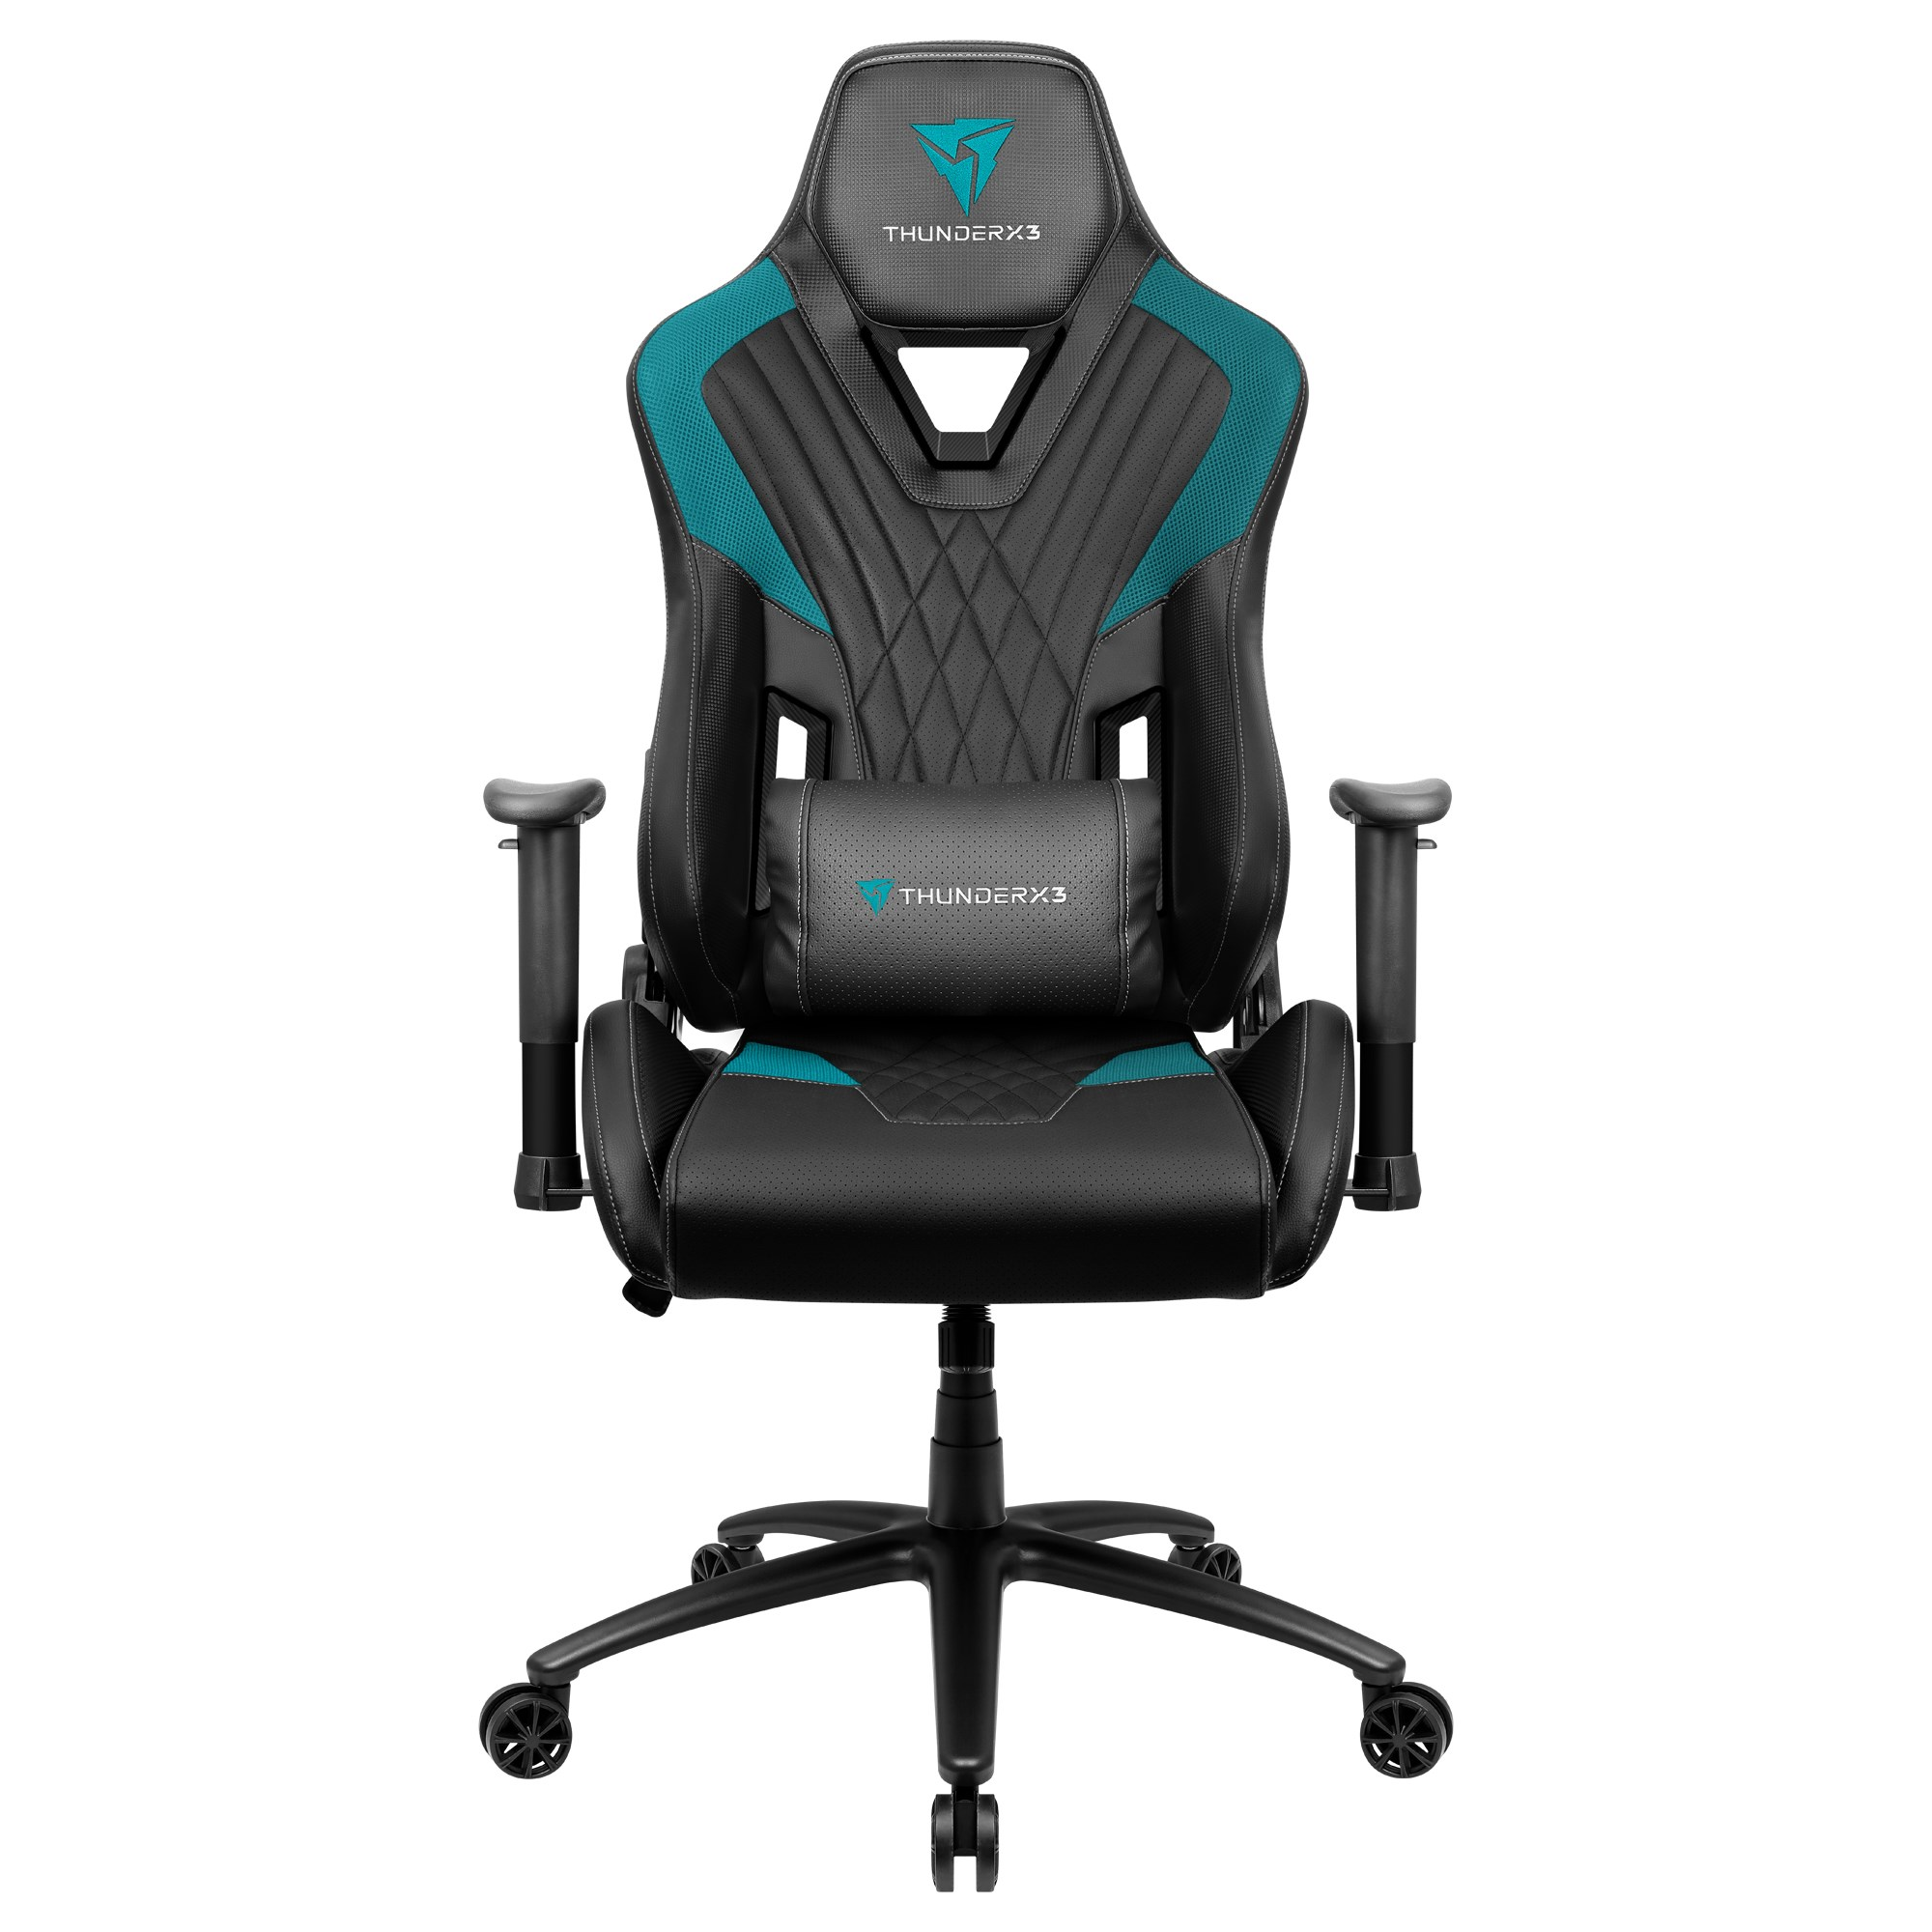 ThunderX3 DC3, Gaming Chair, Technology AIR, Breathable And Adjustable, Cyan